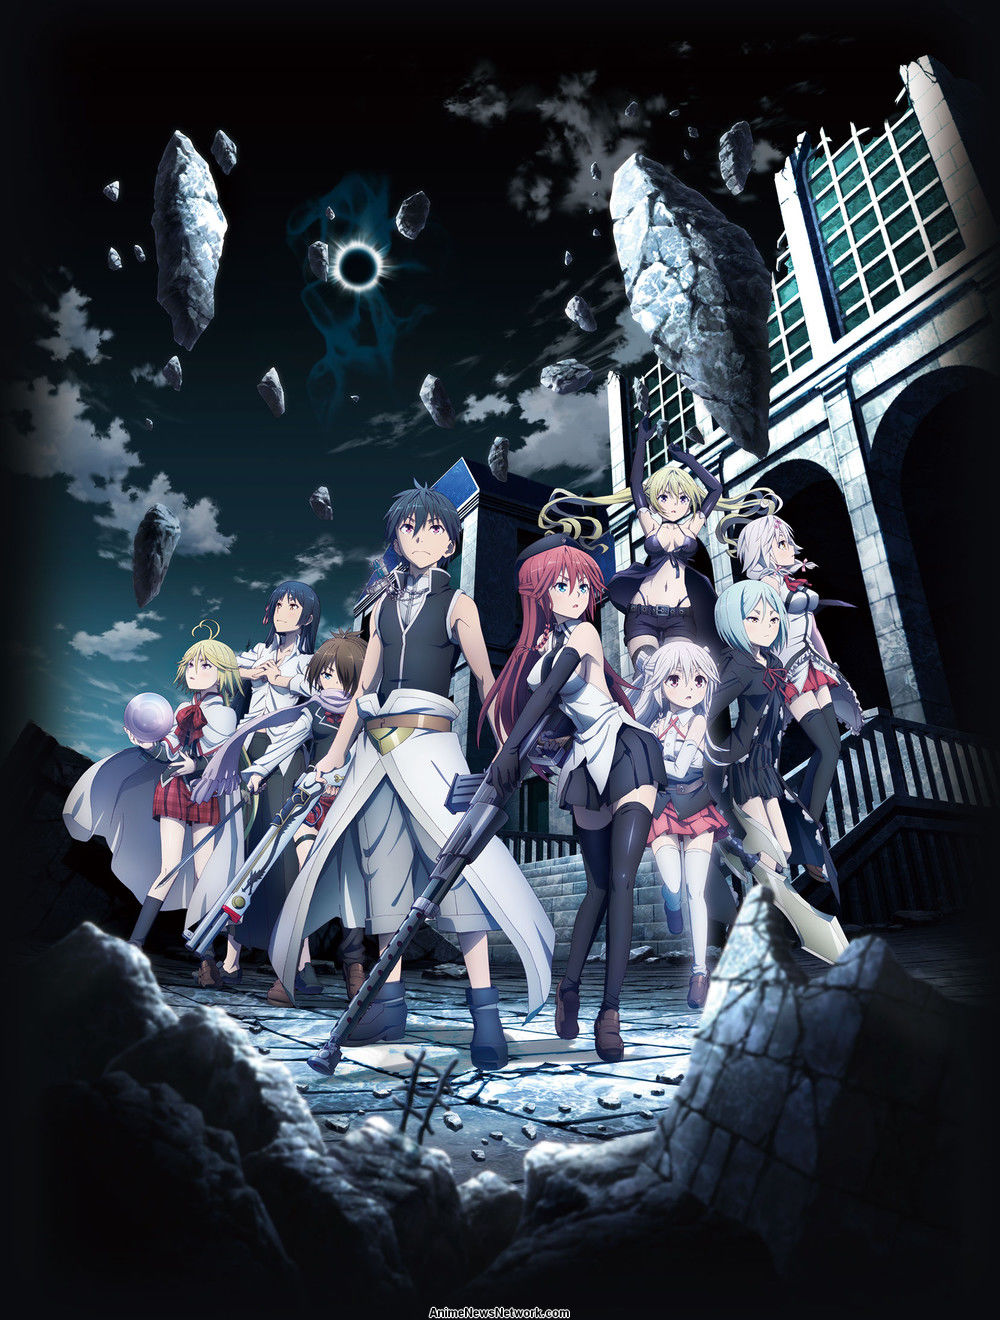 trinity seven film s new cast story title visual  the film s story begins when arata inadvertently touches hermes apocrypha lilith s grimoire suddenly he is enveloped by a bright white light